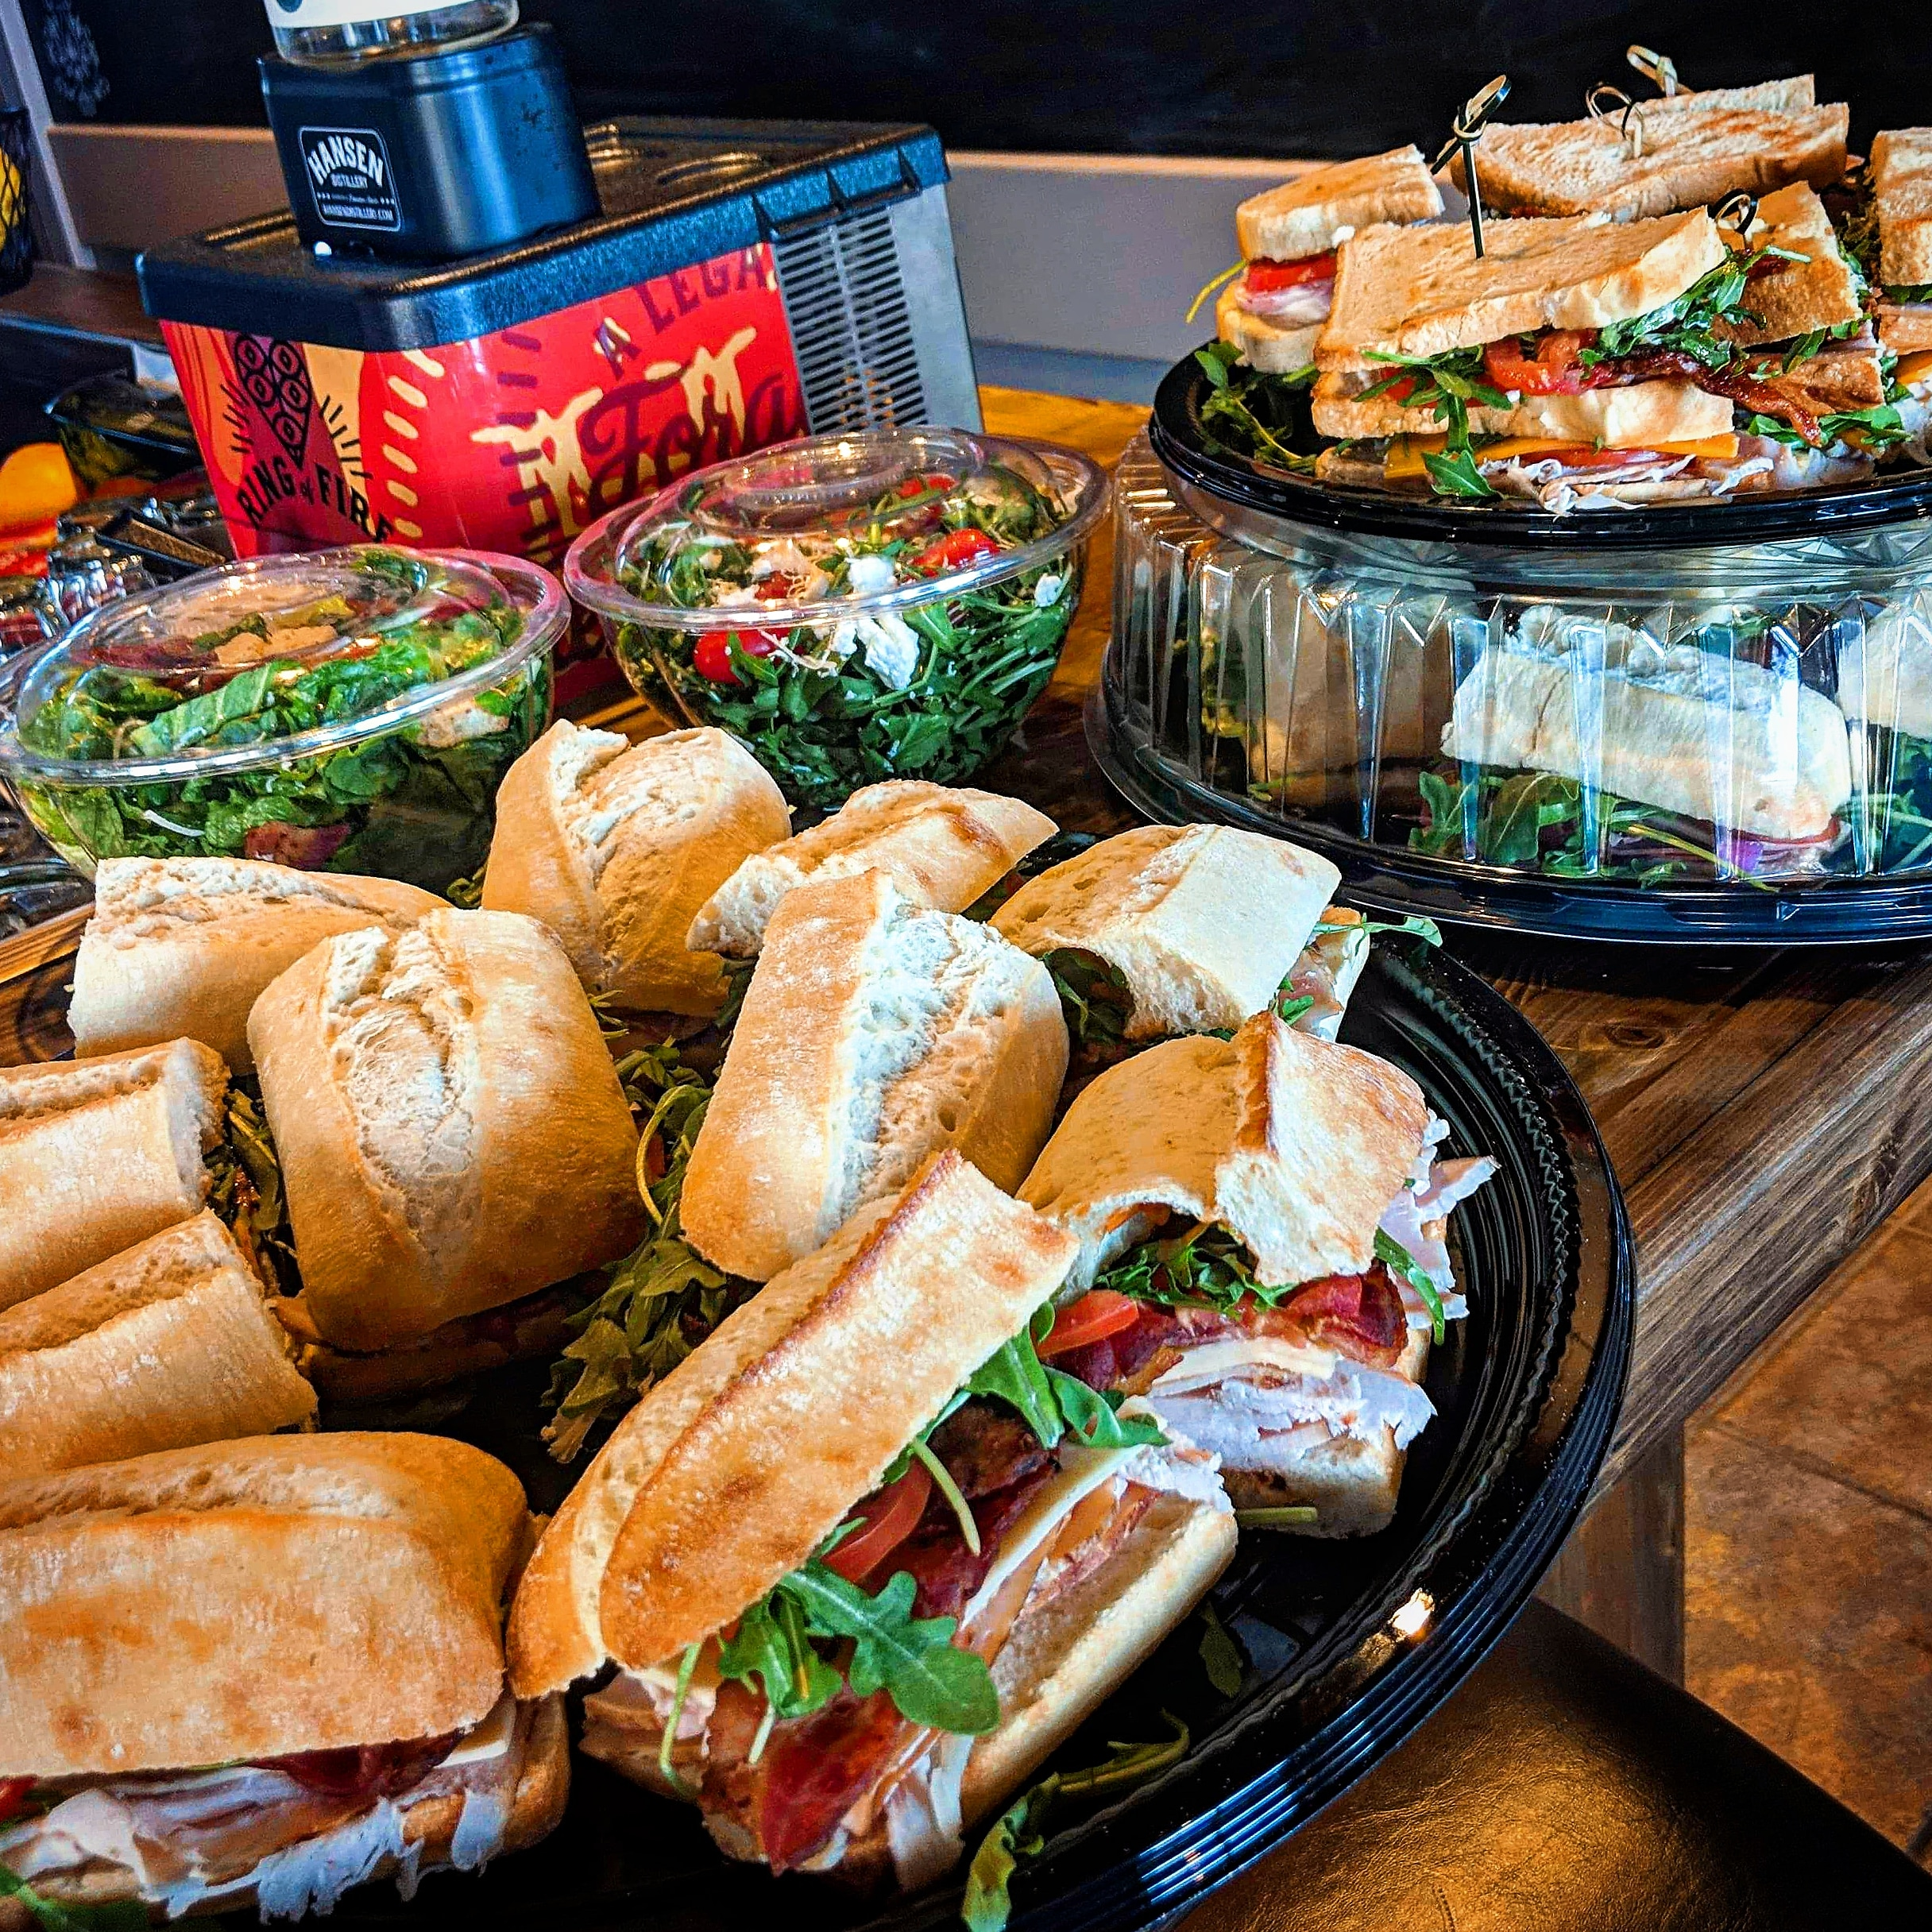 office lunch catering - We can provide your office with a gourmet sandwich platter, salads, soups, desserts and more!